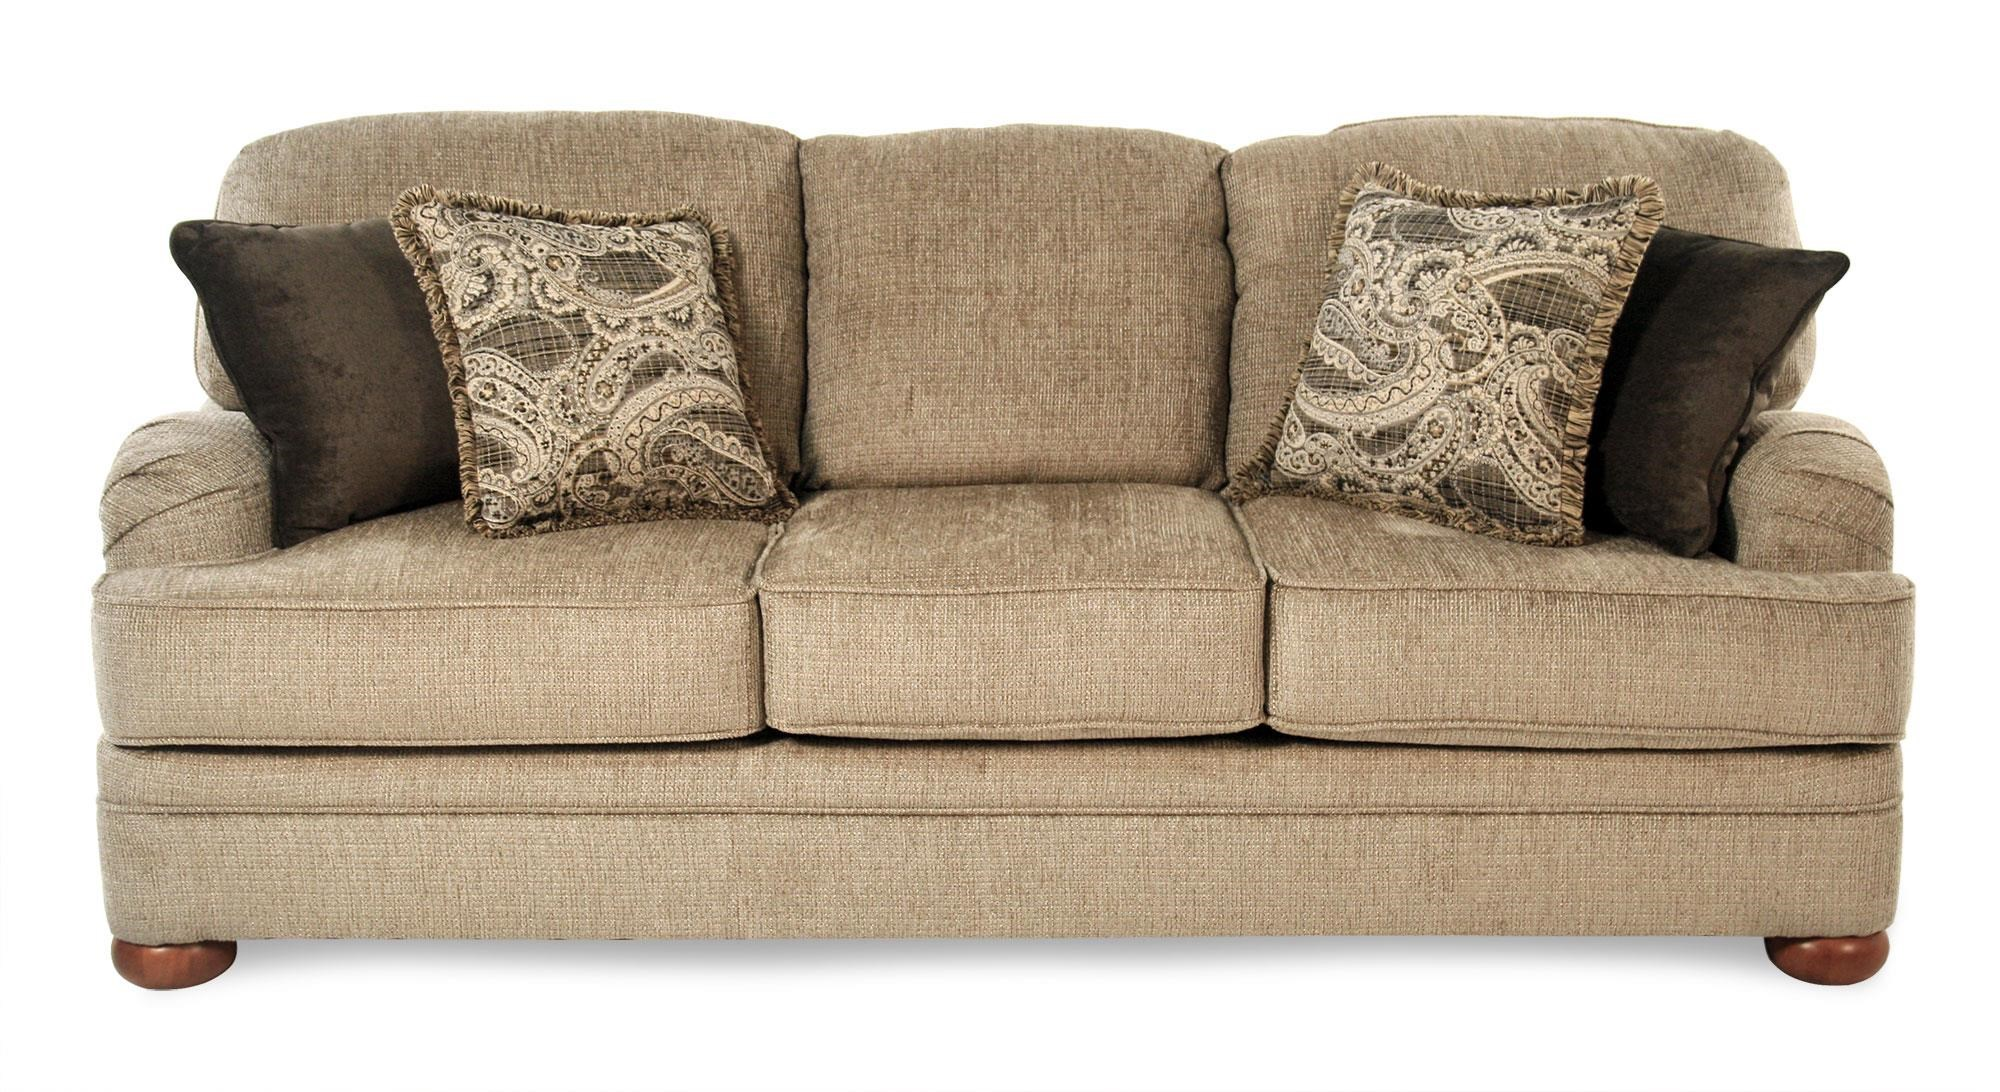 Transitional Sofa with English Arms